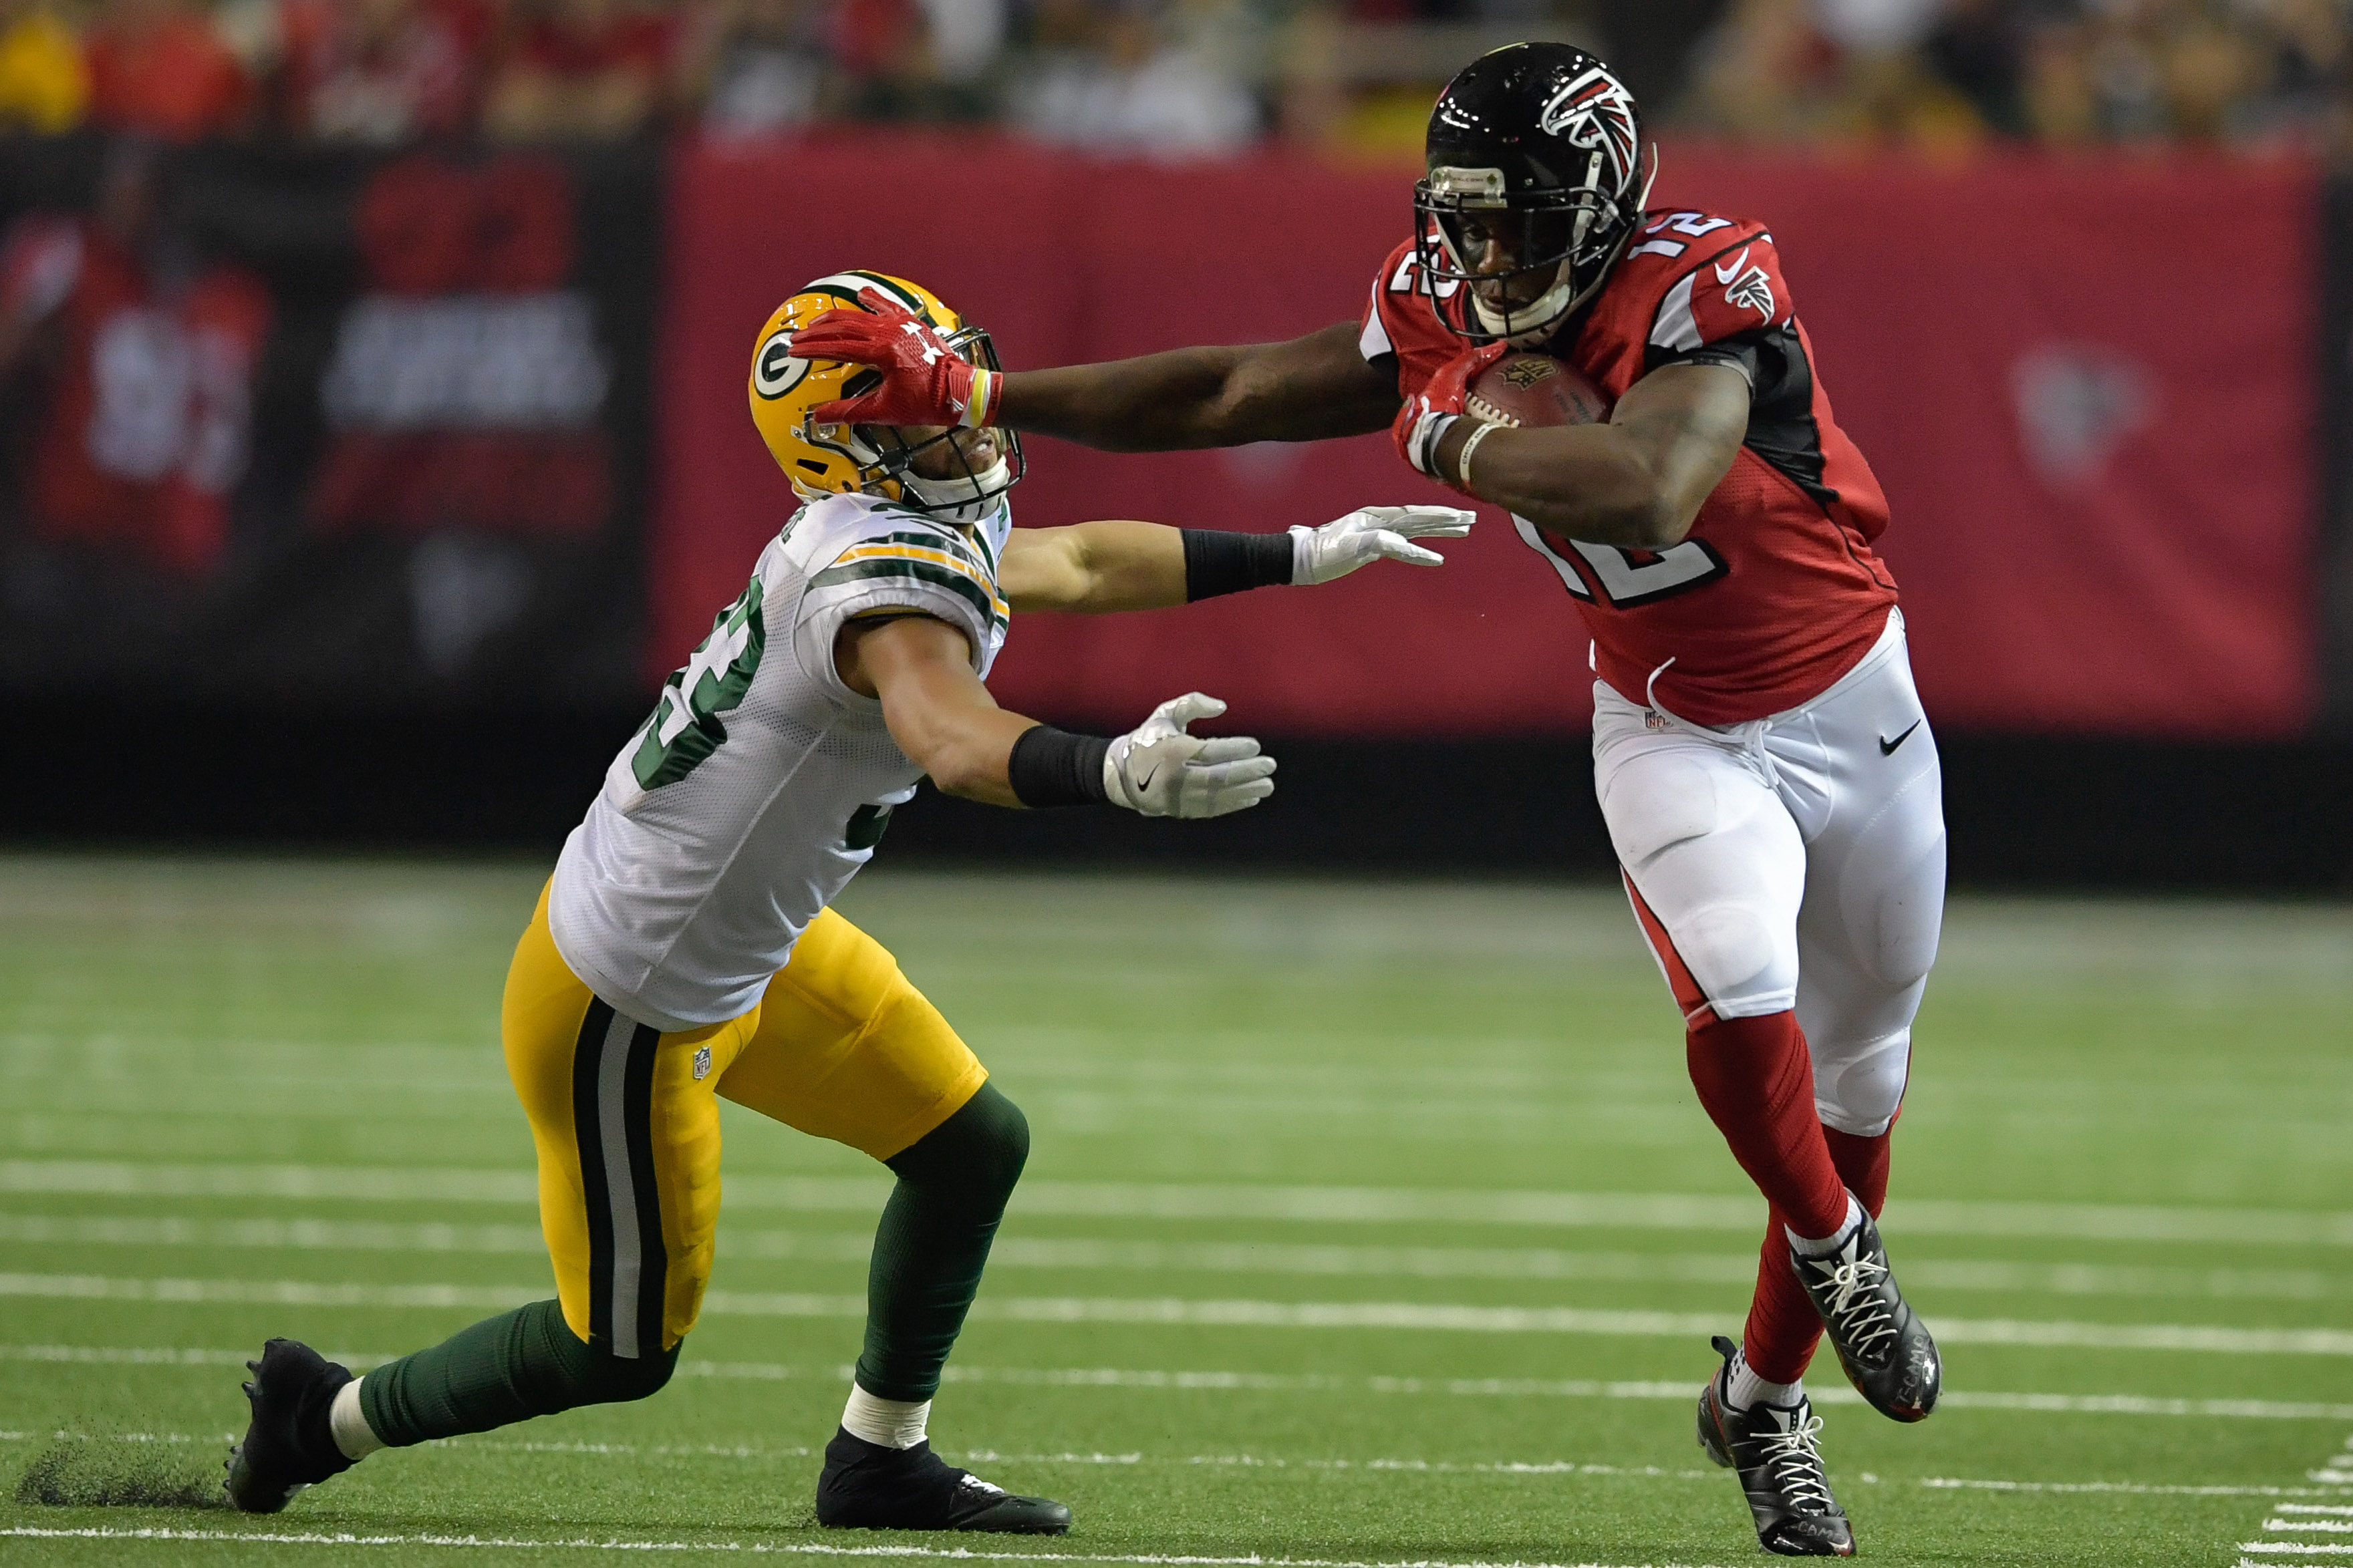 Atlanta Falcons to host Green Bay Packers in NFC Championship Game